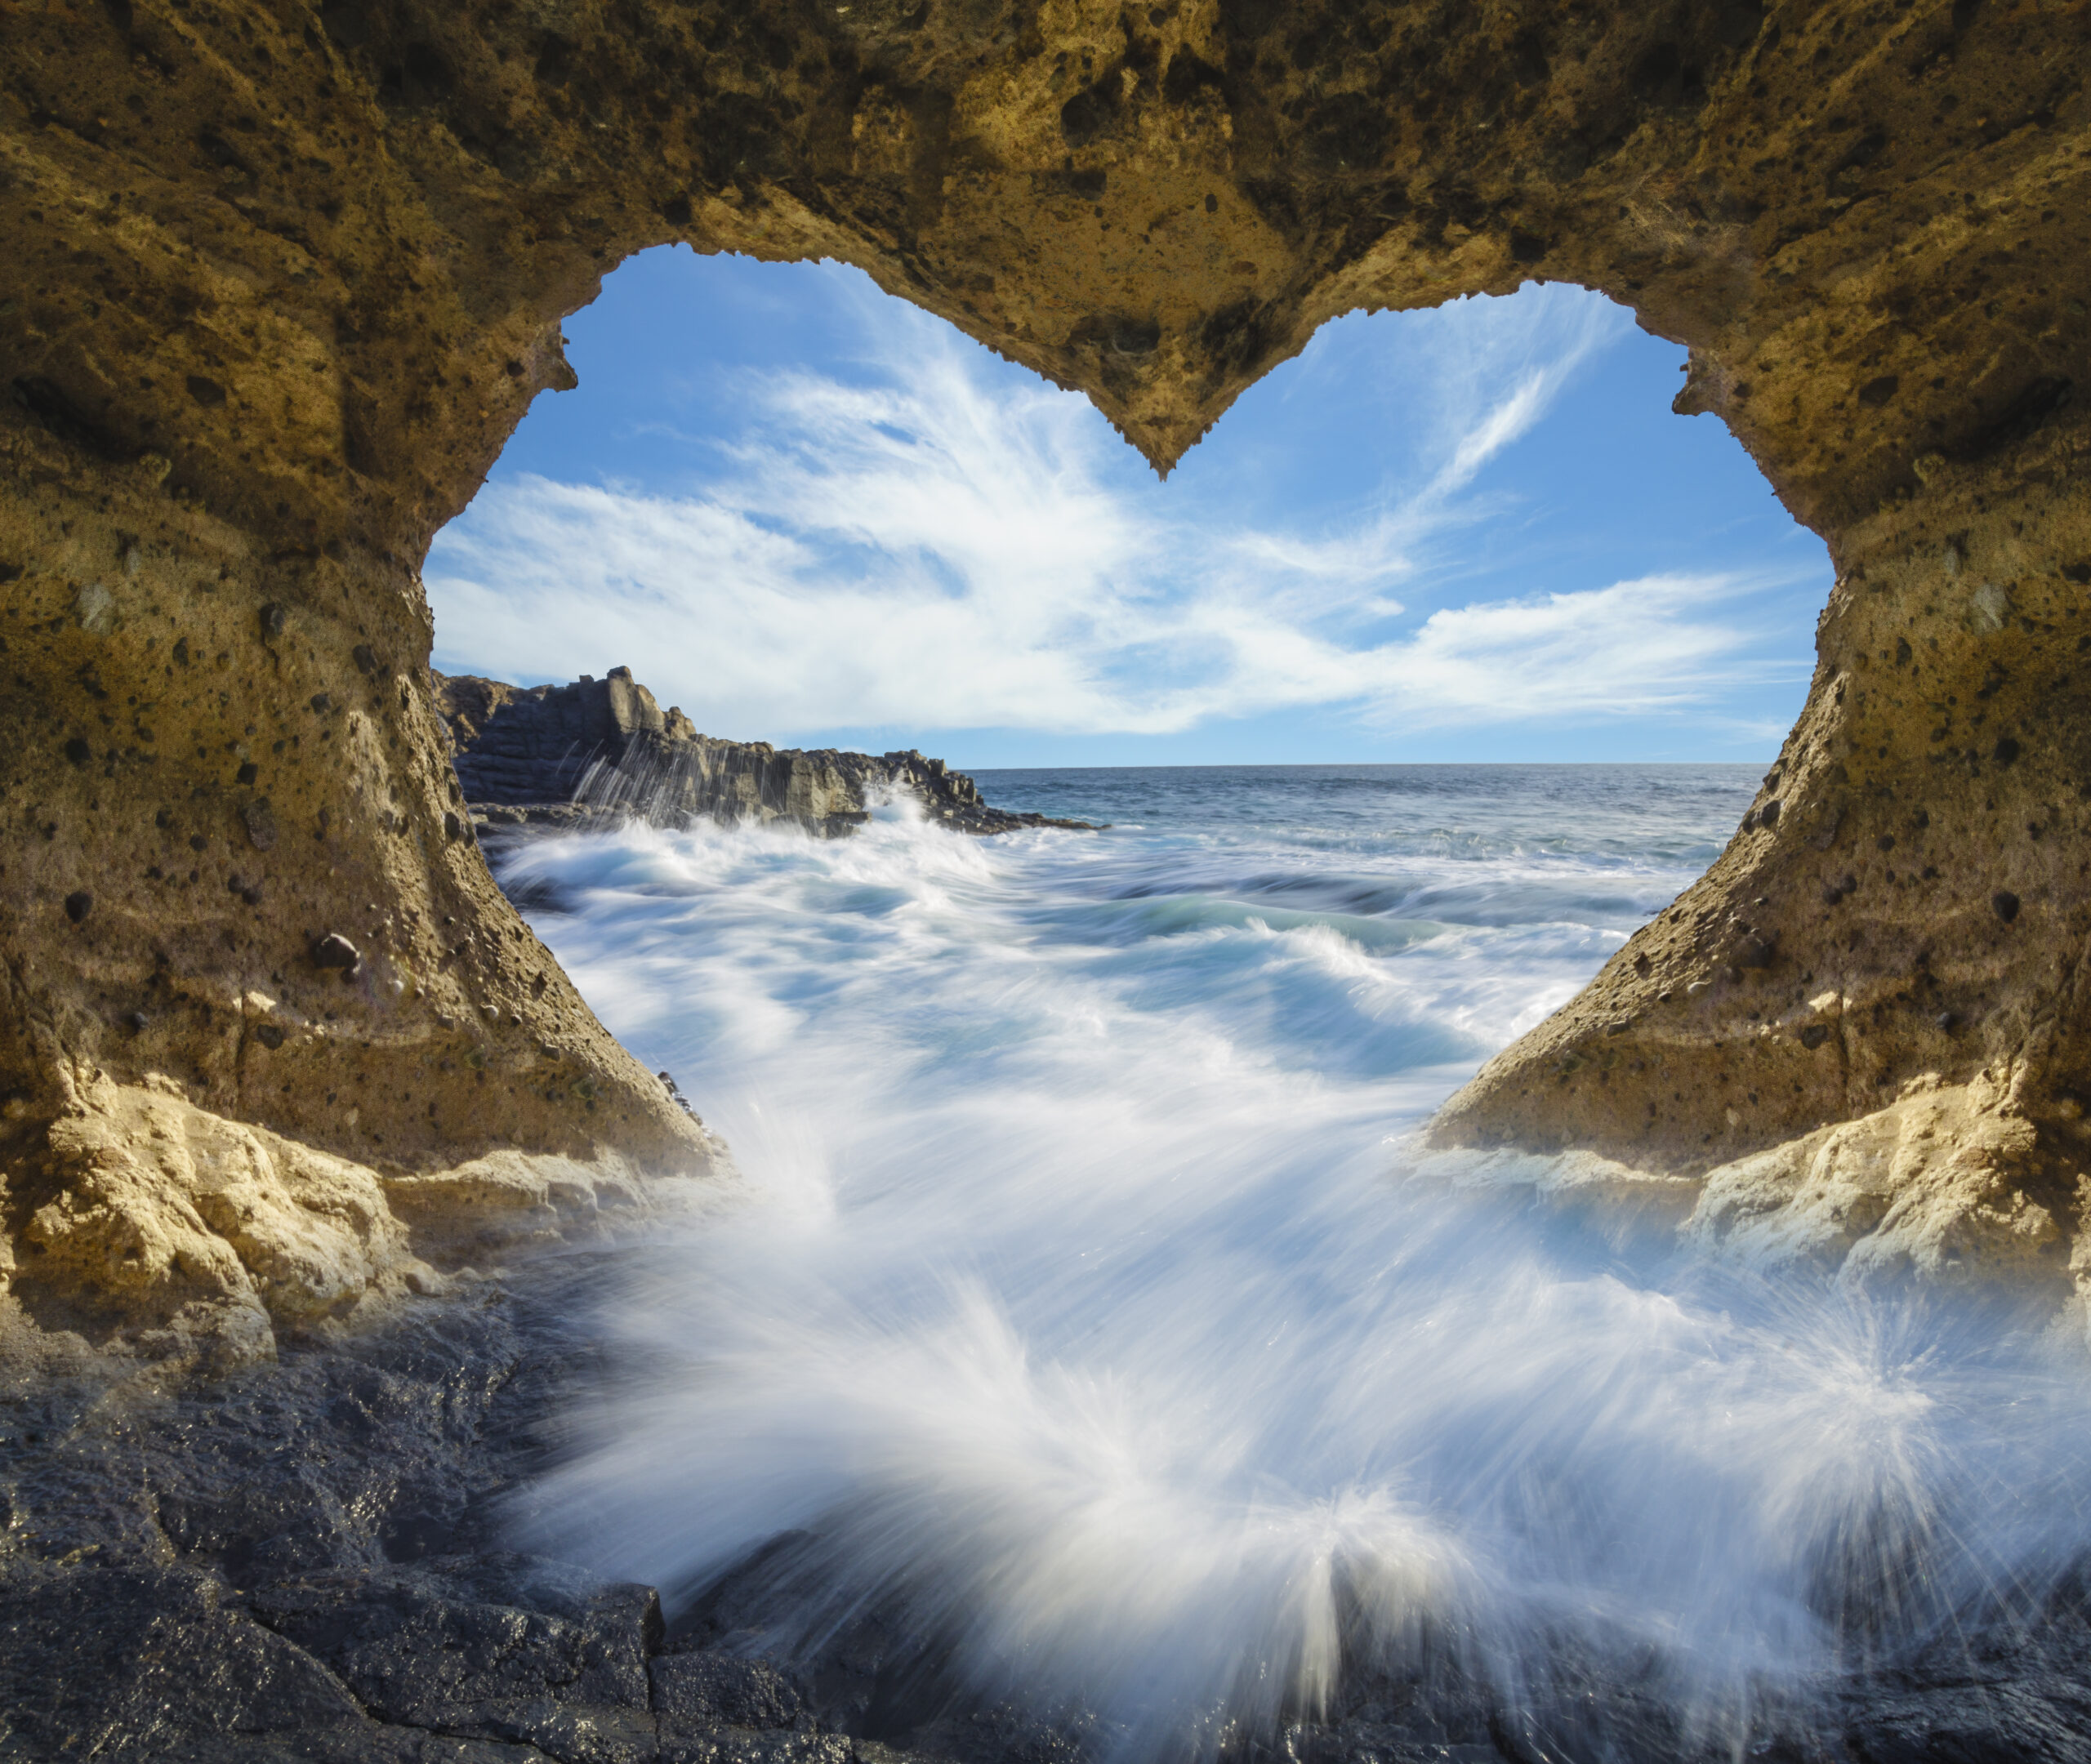 view of the ocean from a heart-shaped cave